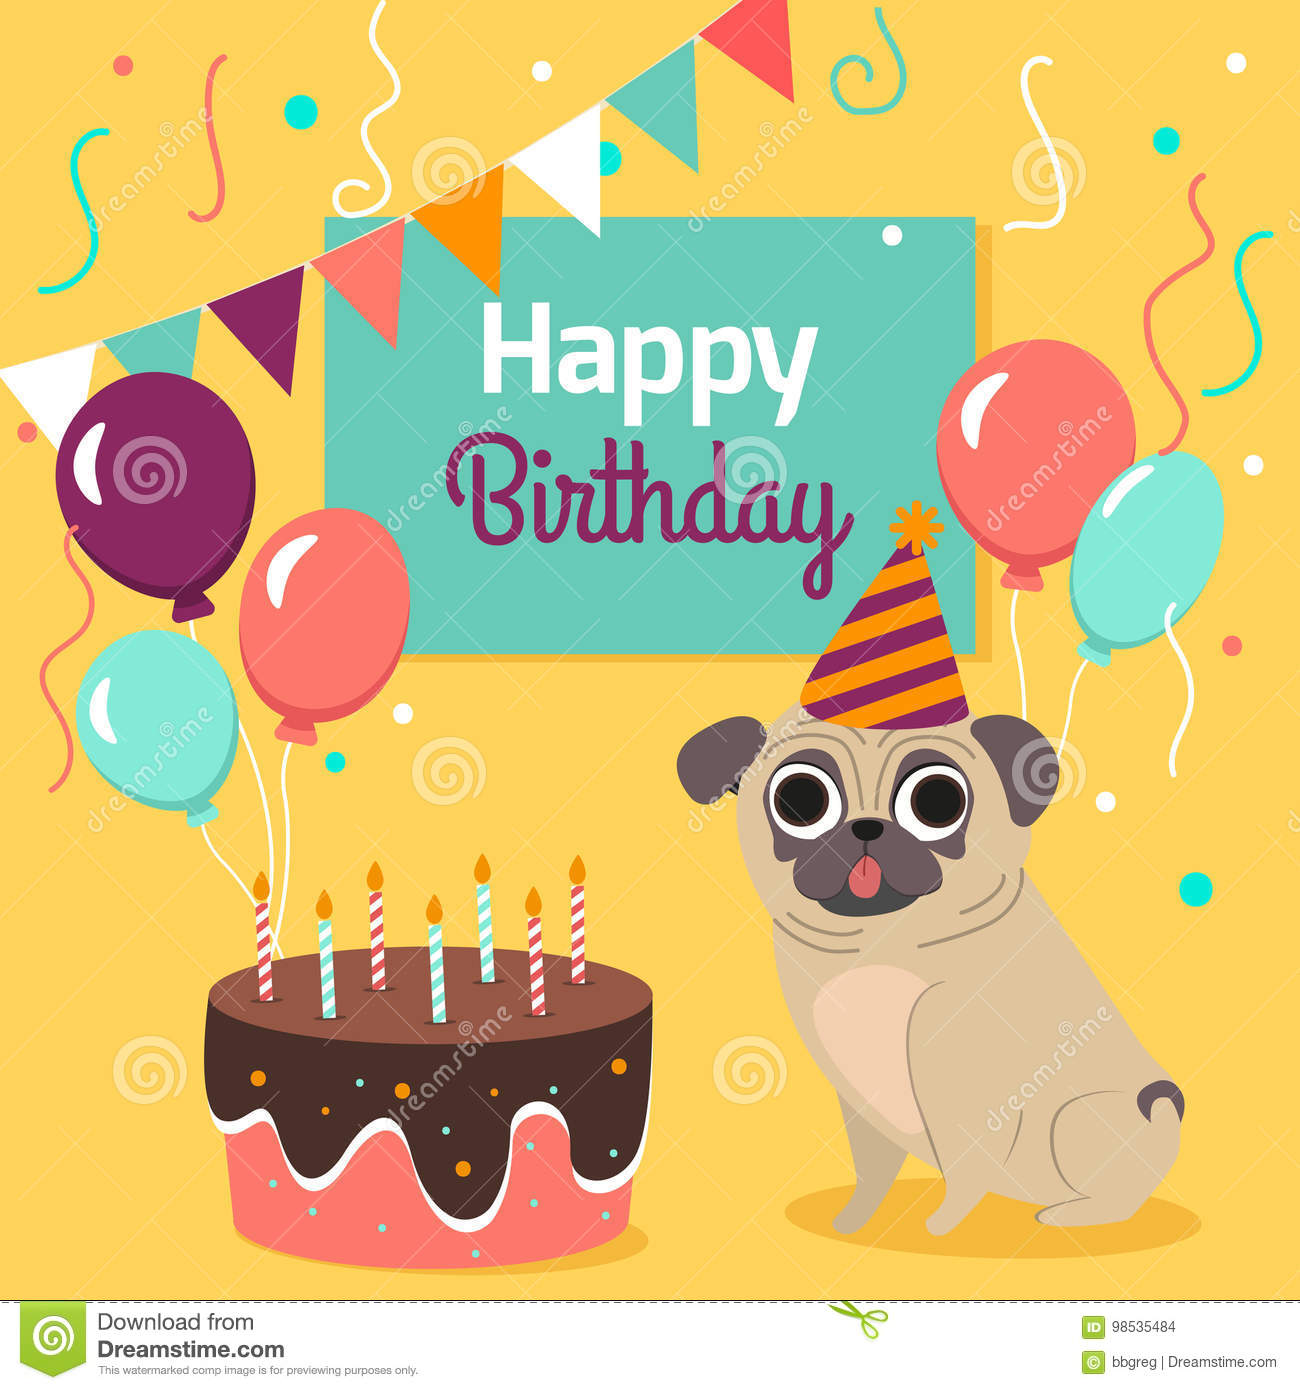 Happy Birthday Card With Funny Pug Dog Cake Colorful Balloons On Bright Yellow Background